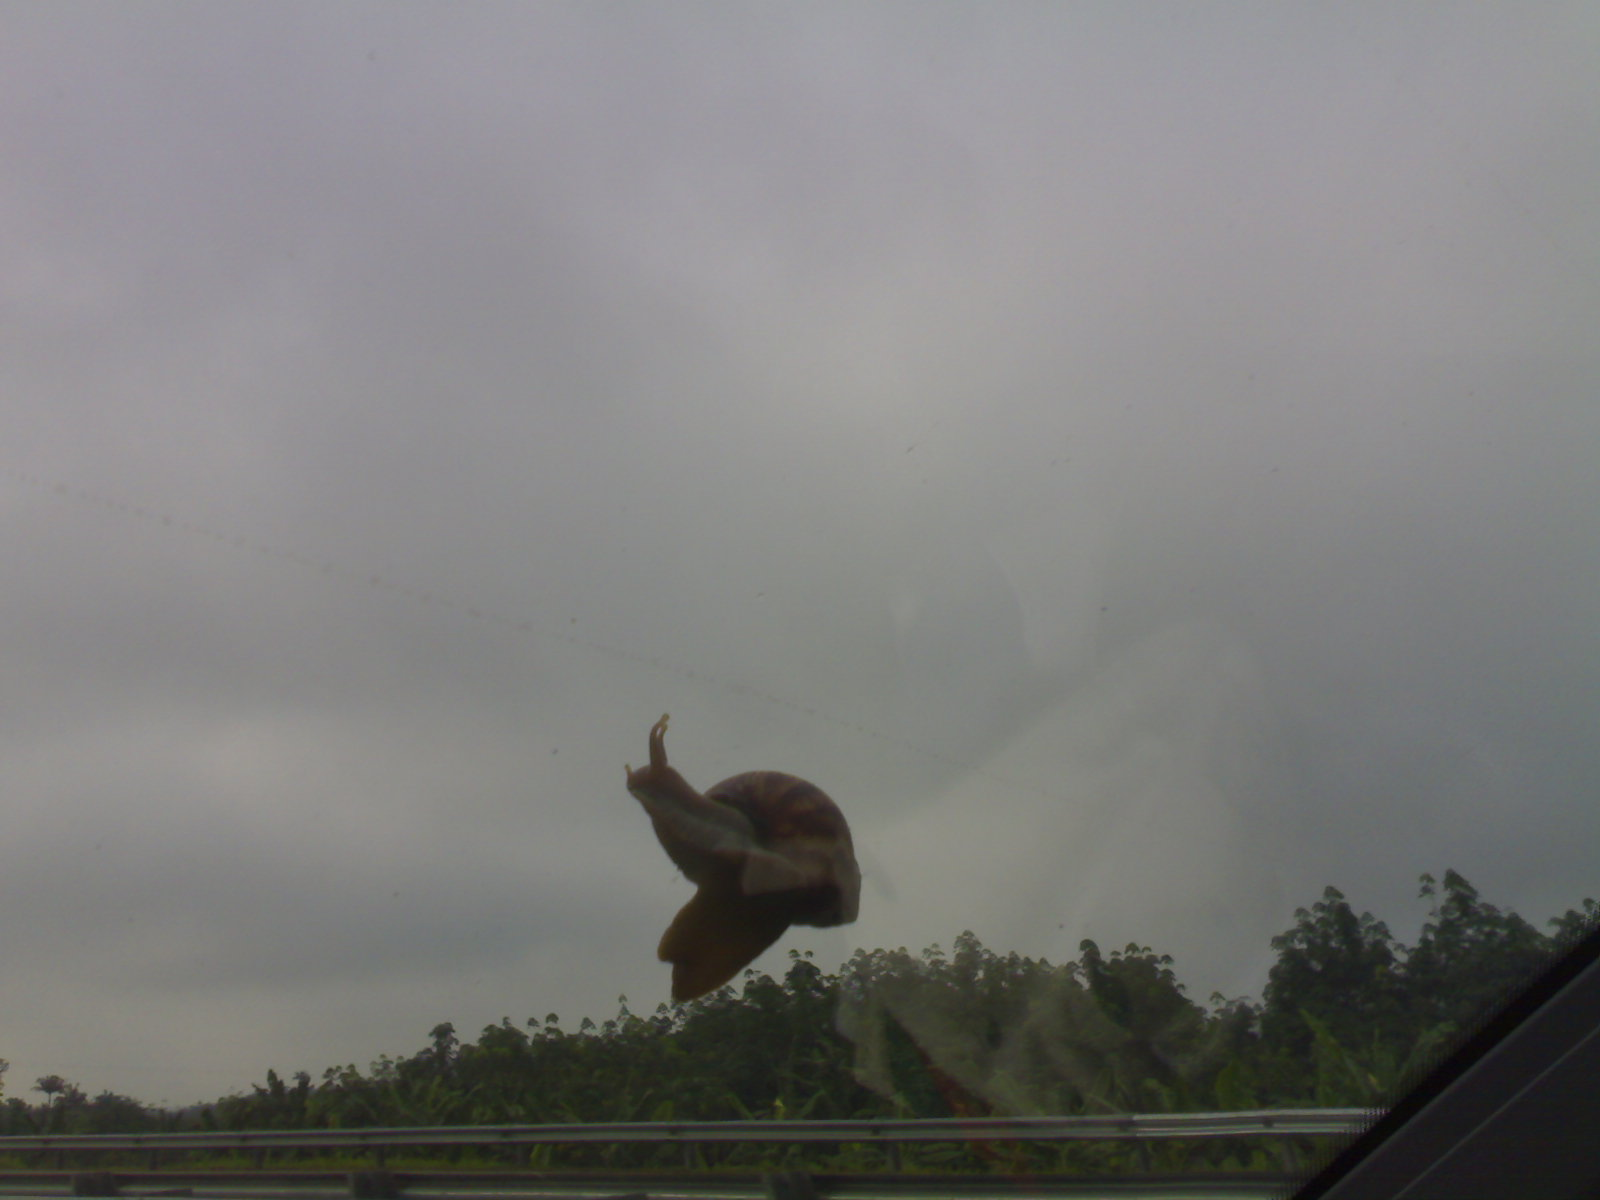 The snail's desire to get a better view drops while his fear of getting blown away suddenly struck it as it glided up the windscreen assisted by the 'kind wind'